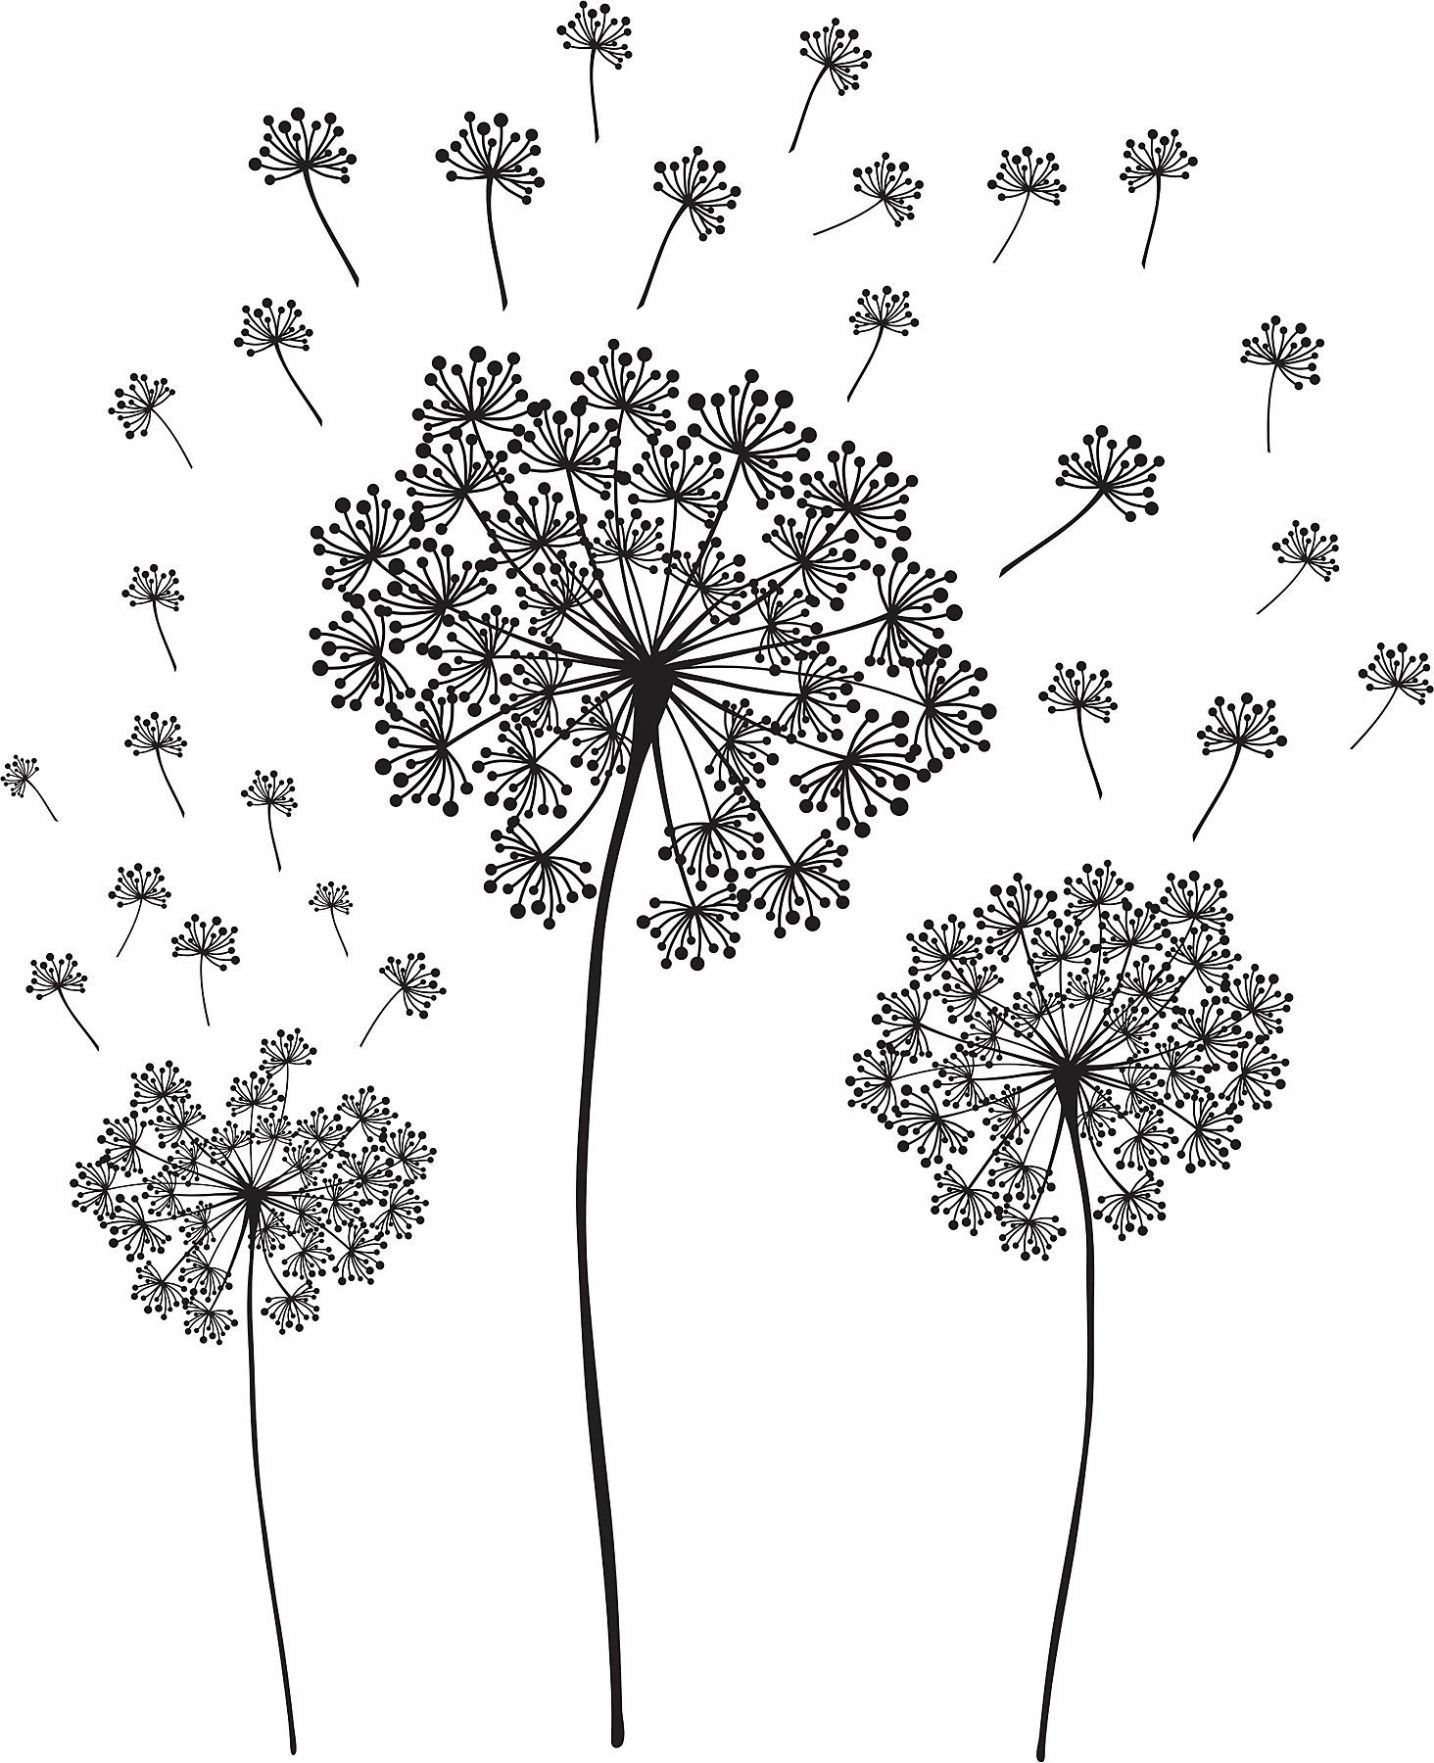 Dandelion Wall Art Sticker Kit with Dandelion Wall Art (Image 8 of 20)